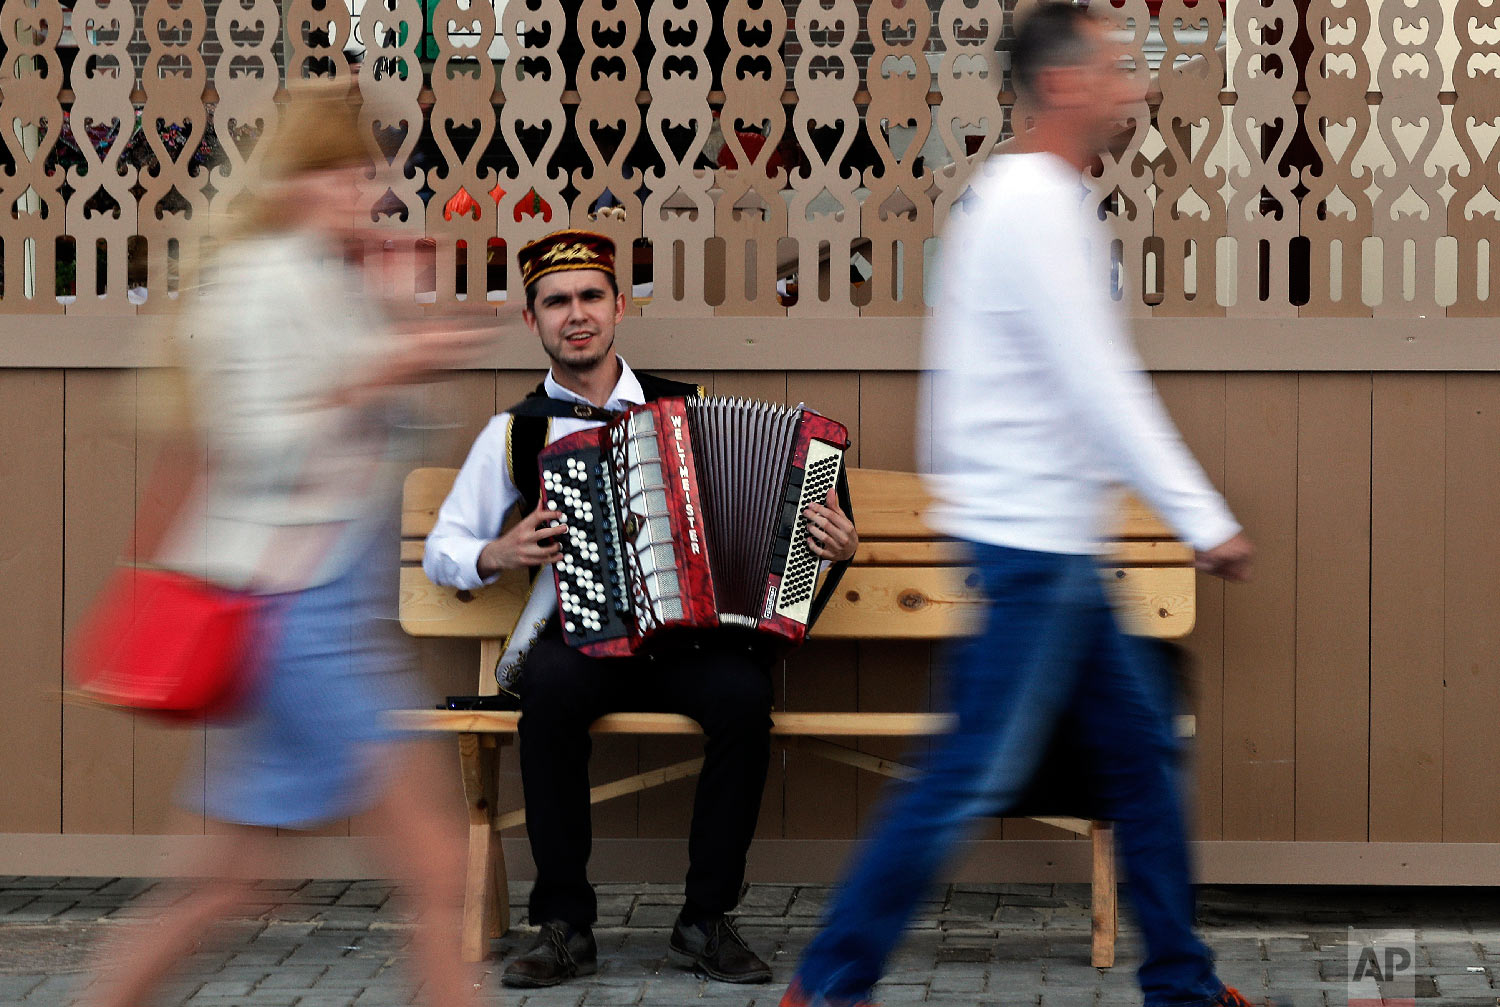 A street musician plays the accordion during the 2018 soccer World Cup in Kazan the capital of the Republic of Tatarstan, Russia on June 21, 2018. (AP Photo/Frank Augstein)